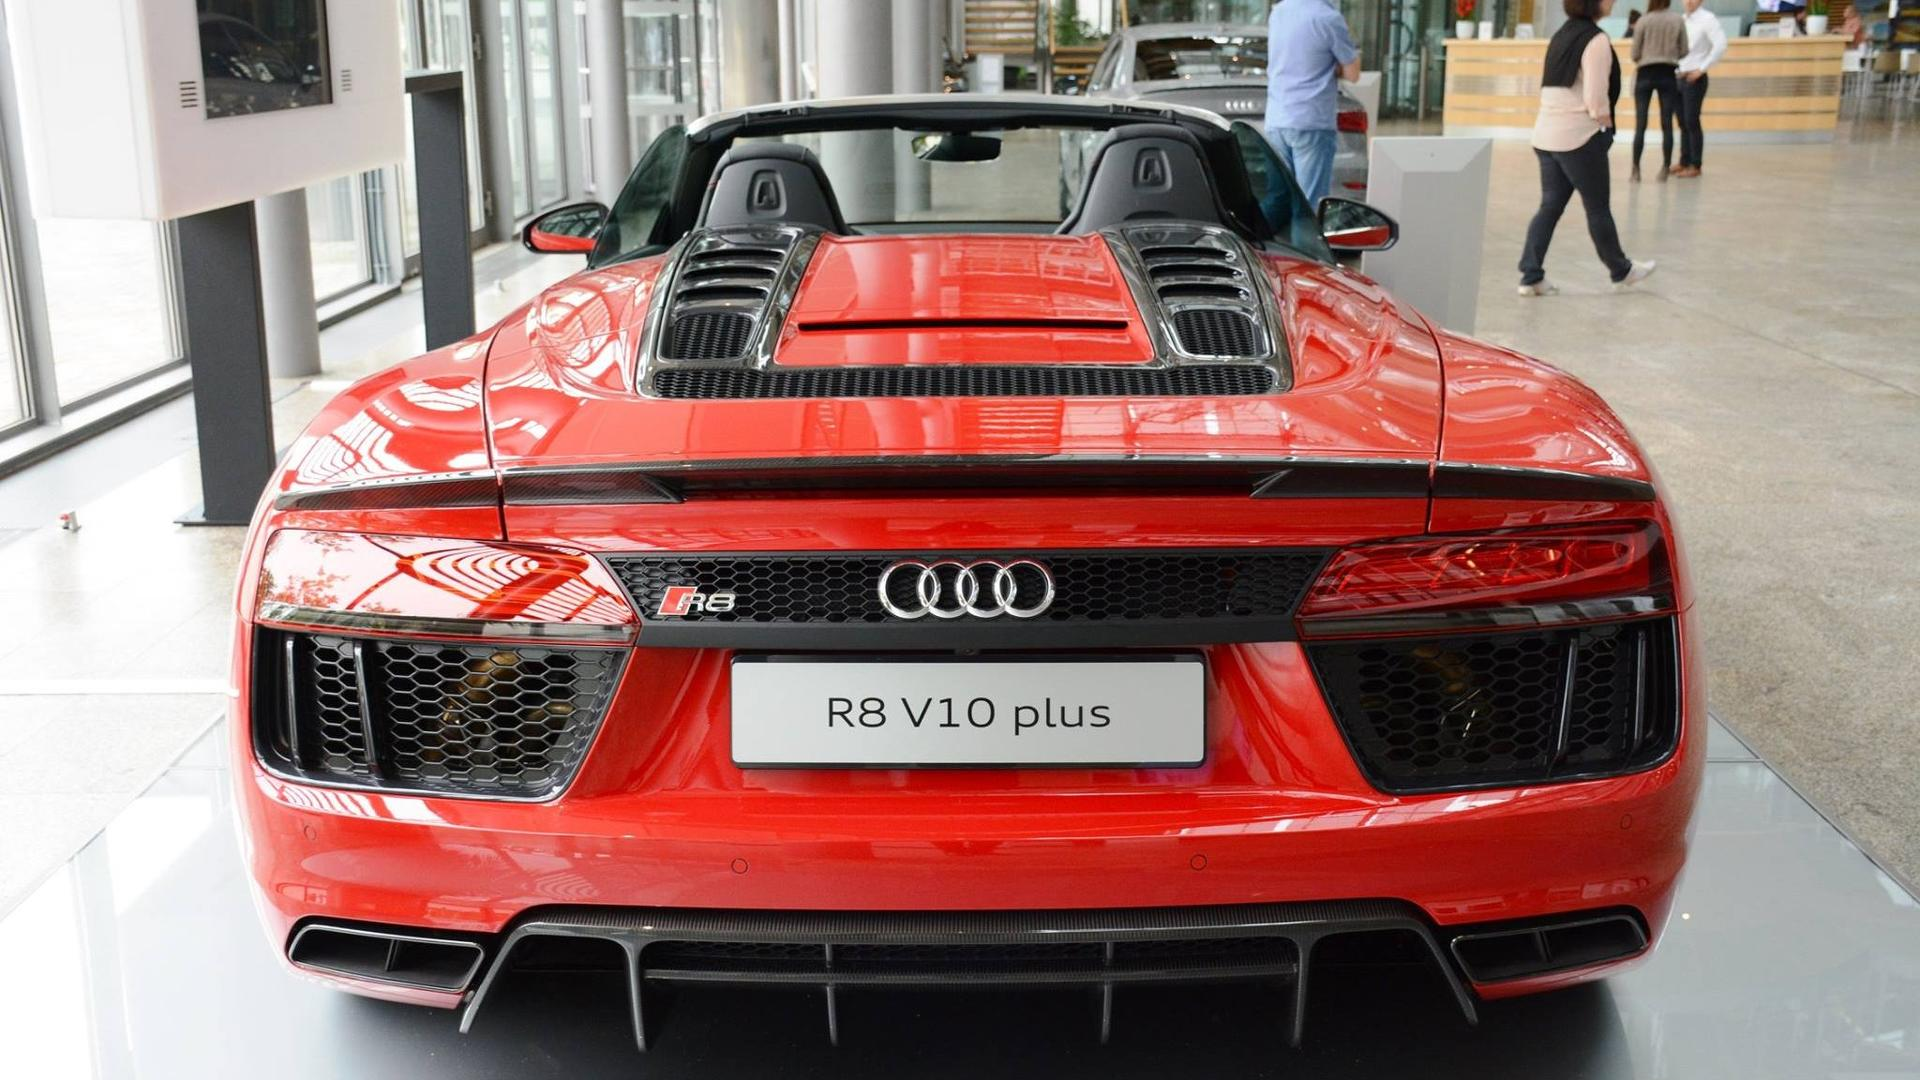 Watch The Audi R V Plus Blast To MPH En Route To MPH - Audi r8 v10 spyder